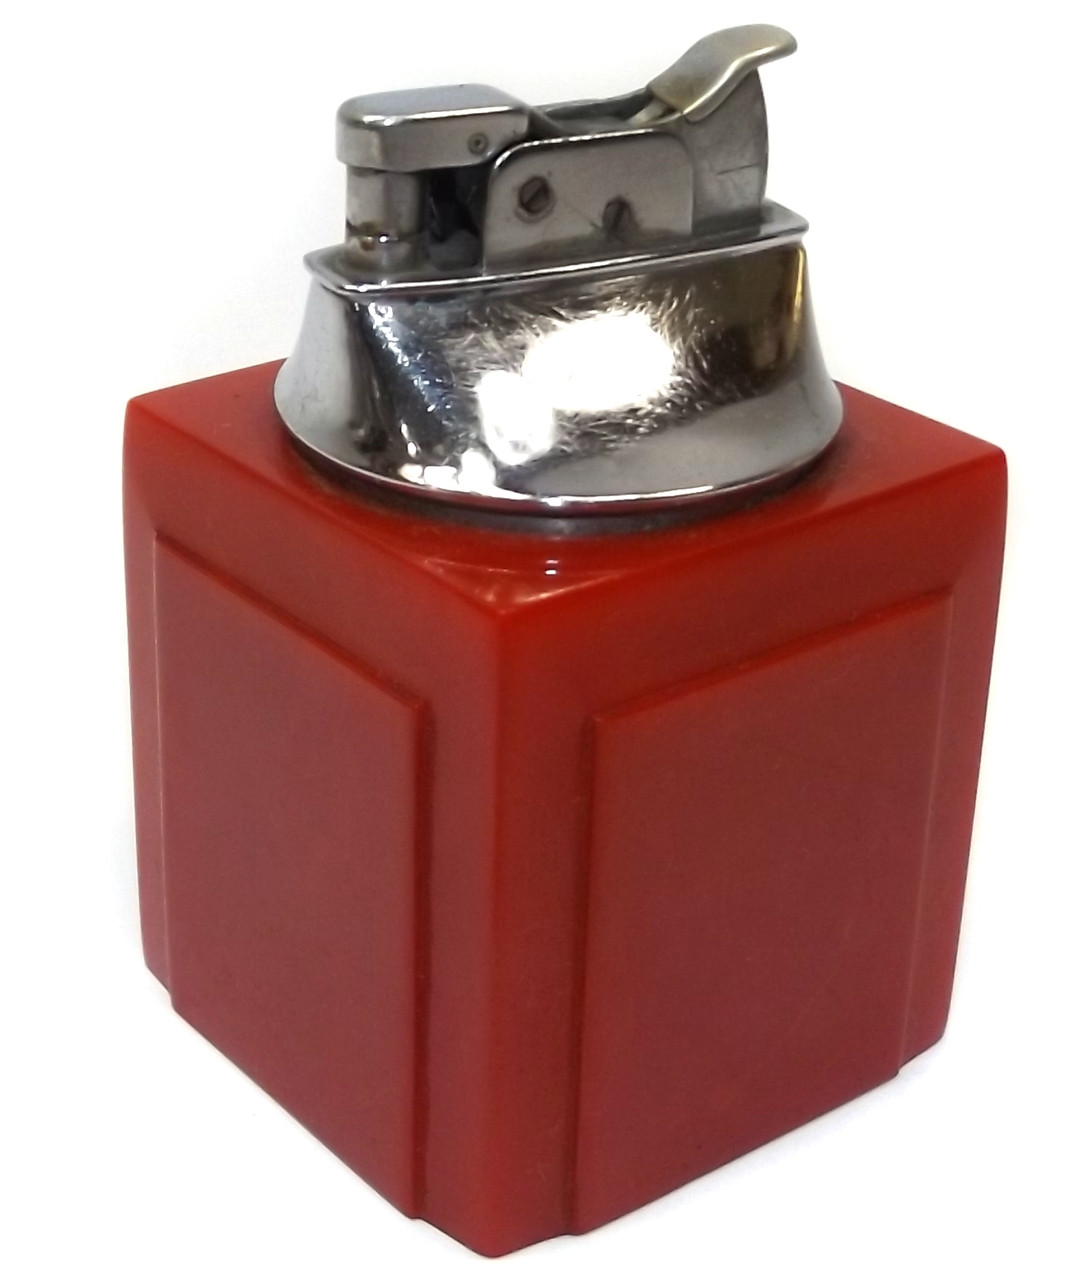 Awesome Vintage Art Deco Cherry Red Cubic Table Cigarette Lighter With Bakelite Body Interior Design Ideas Gentotryabchikinfo